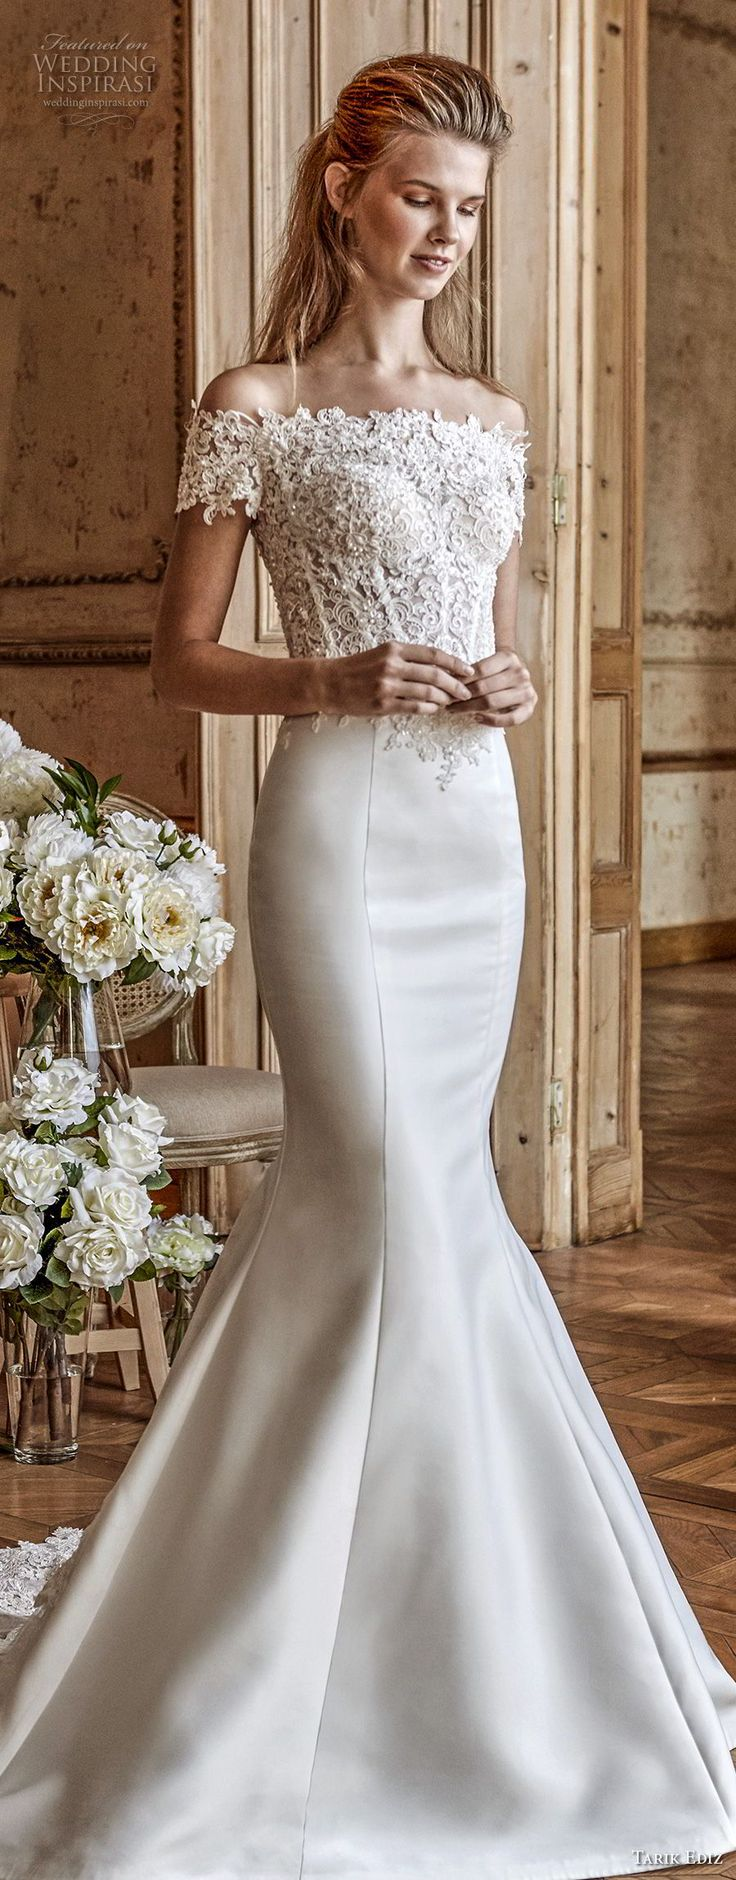 tarik ediz 2017 bridal off the shoulder straight across neckline heavily embellished bodice satin skirt elegant romantic mermaid wedding dress sheer back medium train (31) mv -- Tarik Ediz White 2017 Wedding Dresses